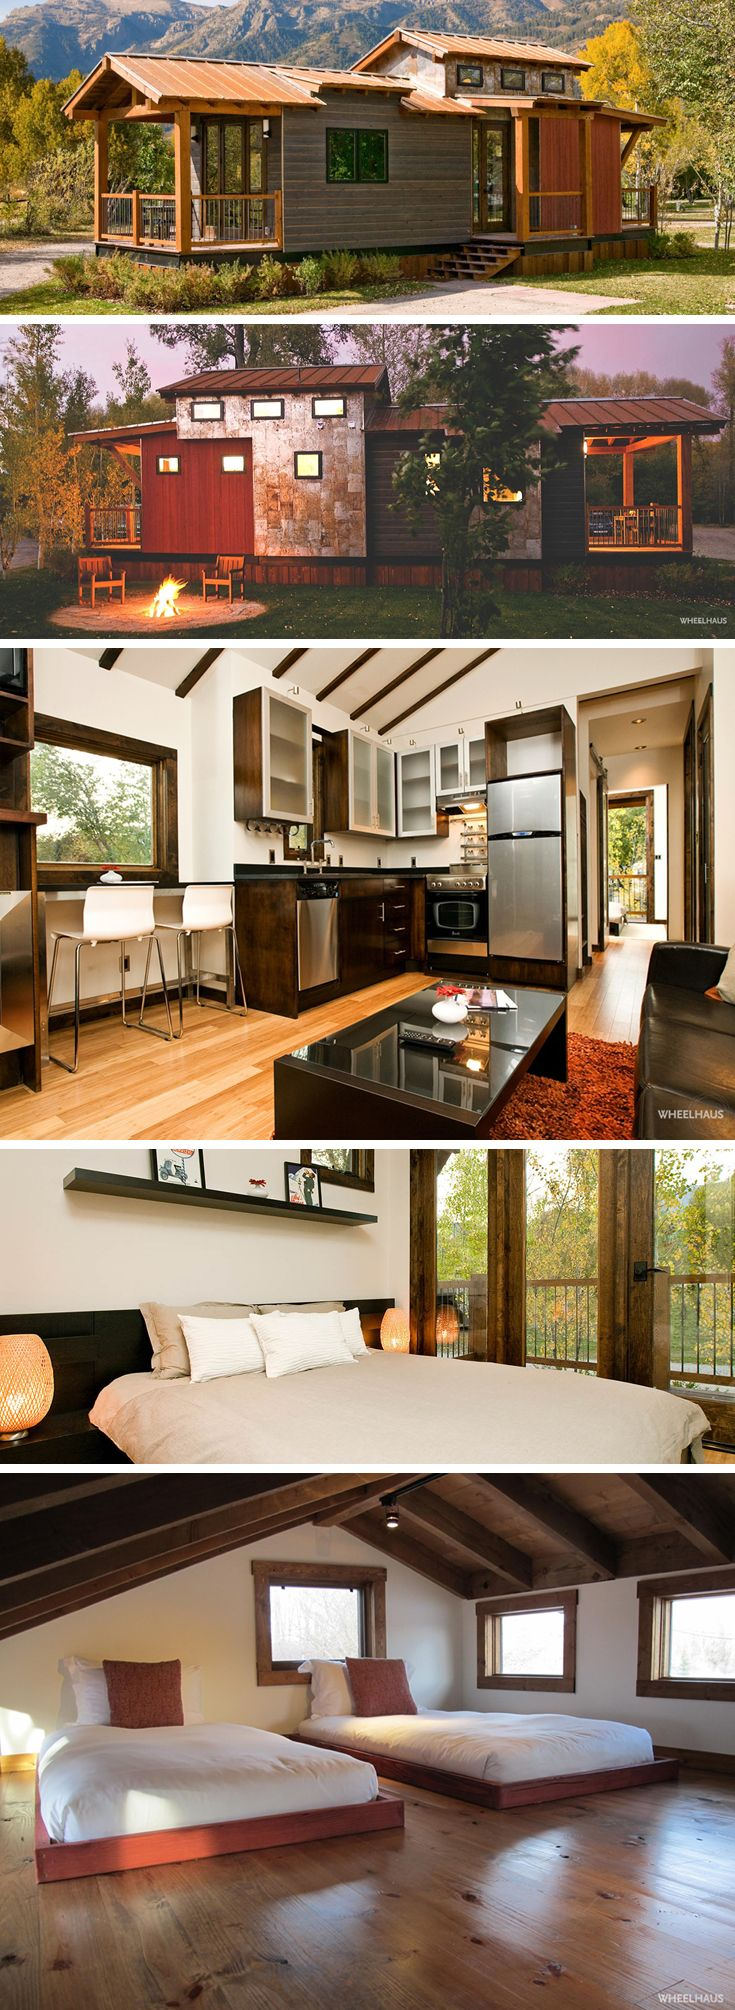 best 25 small house design ideas on pinterest small home plans best 25 small house design ideas on pinterest small home plans small guest houses and tiny guest house